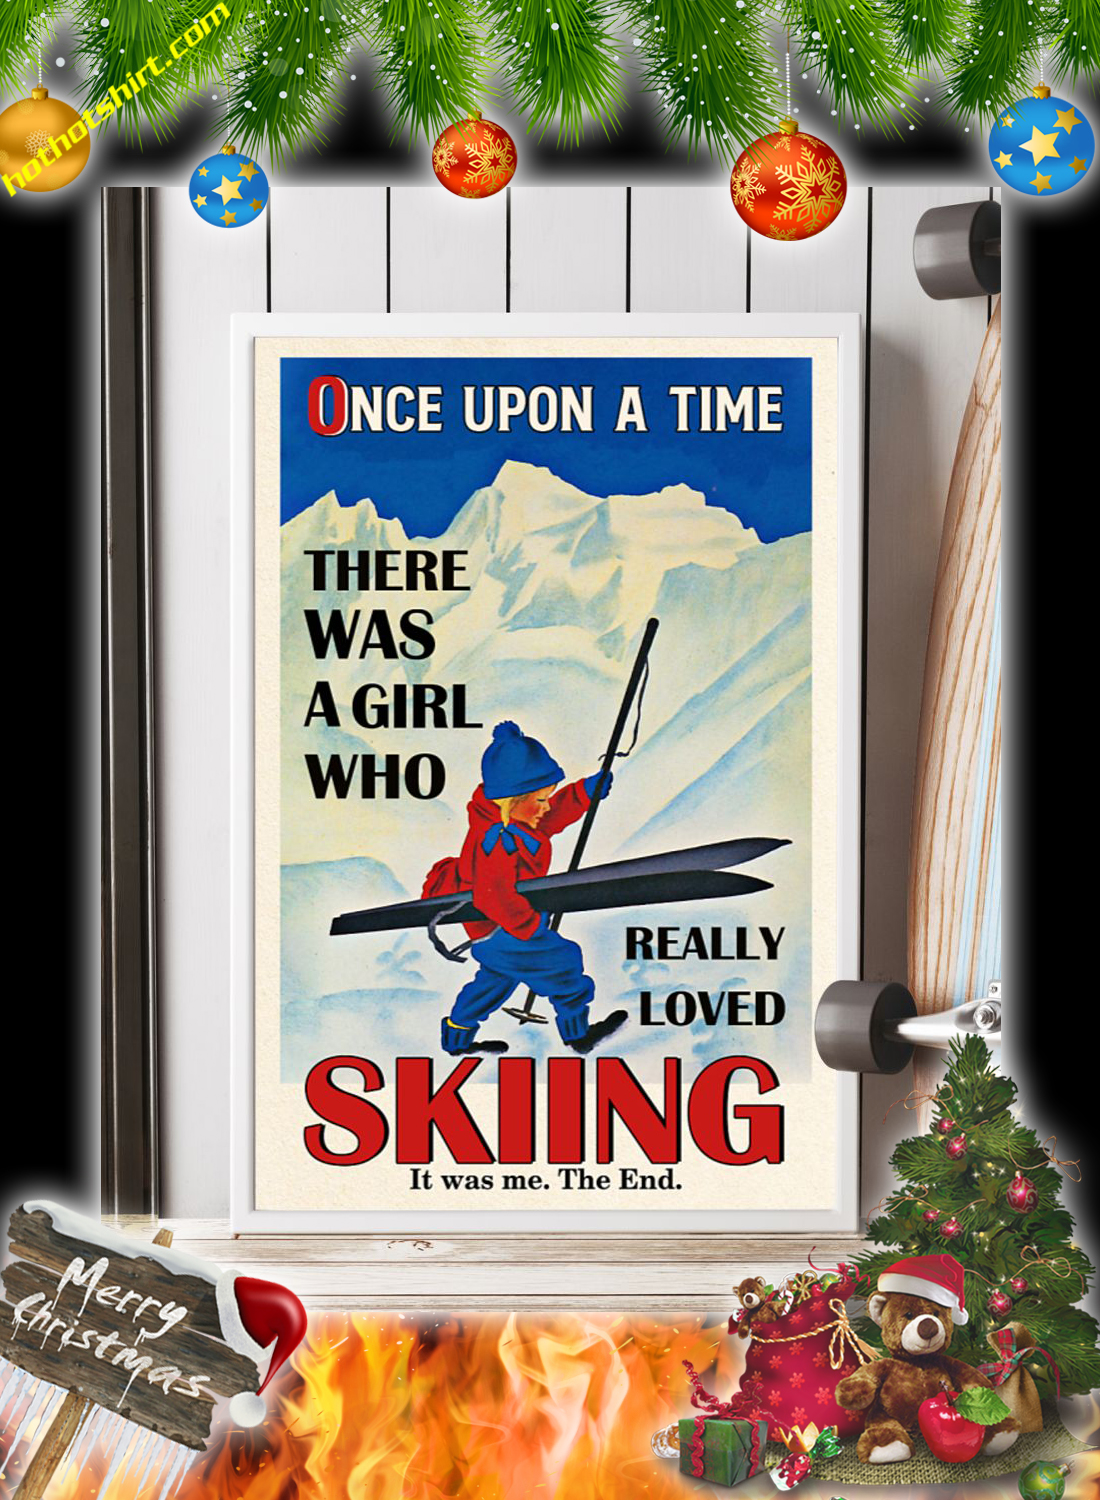 Once upon a time there was a girl who really loved skiing poster 2